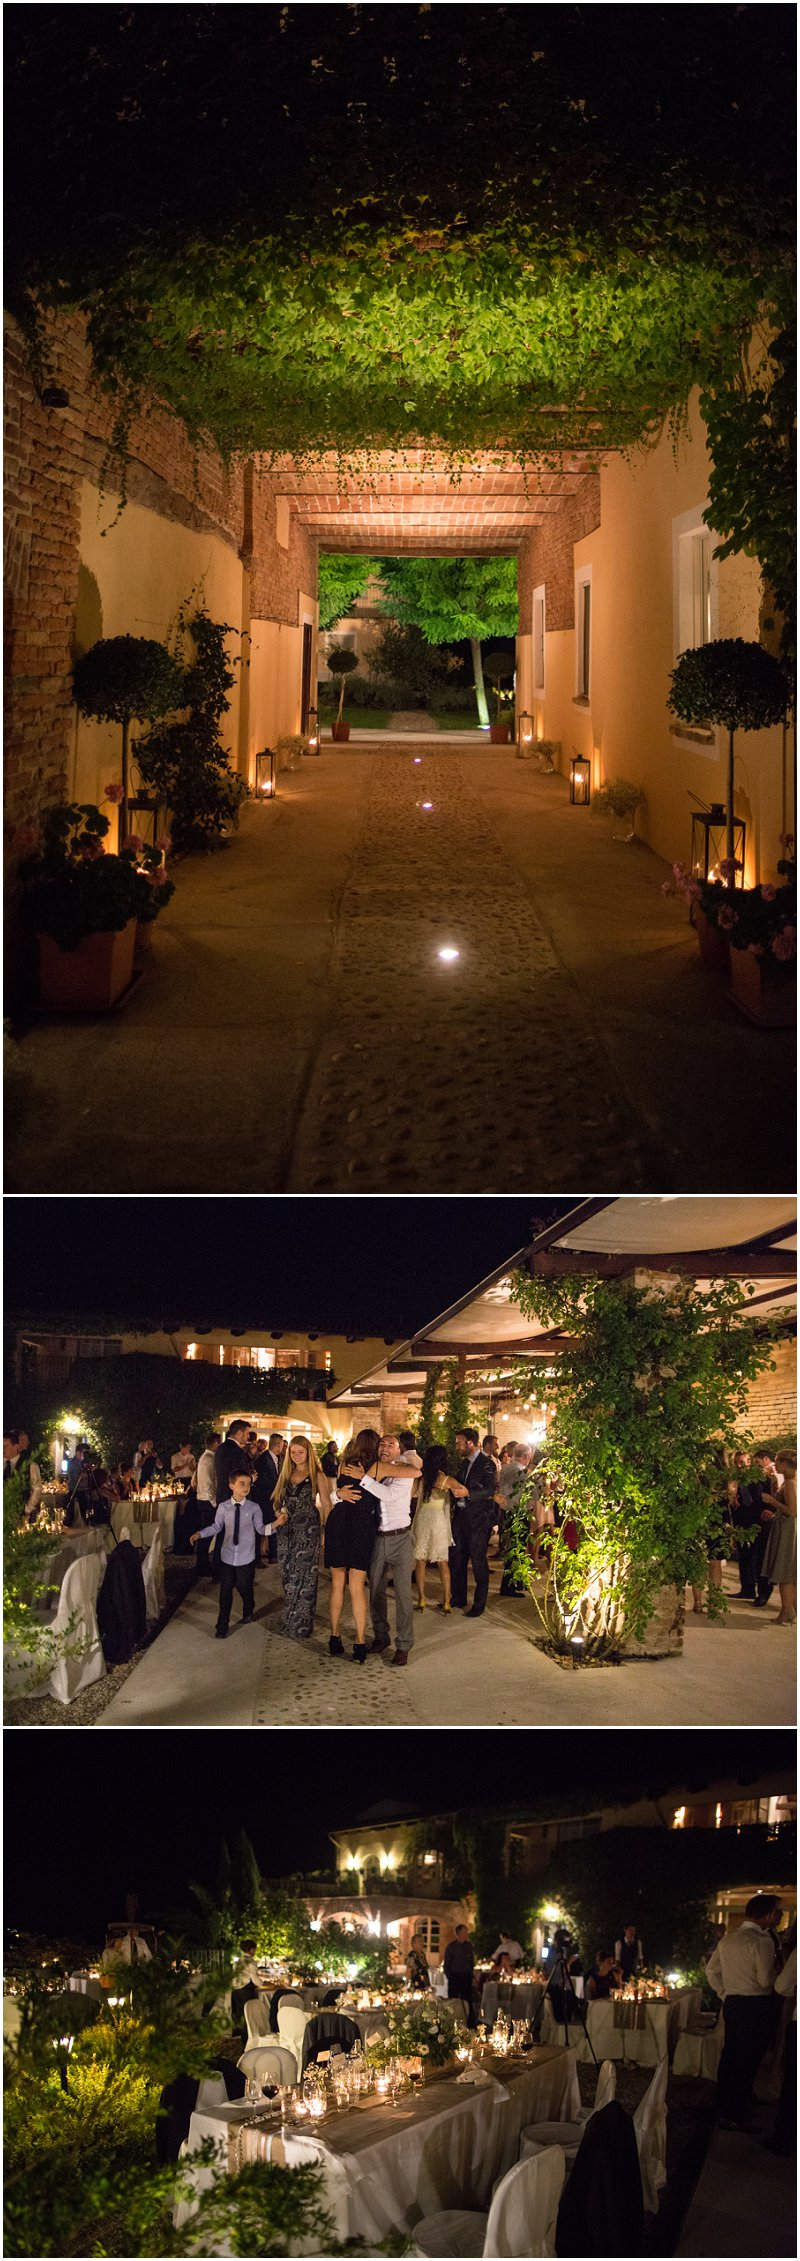 La Villa evening reception by candlelight in Italy